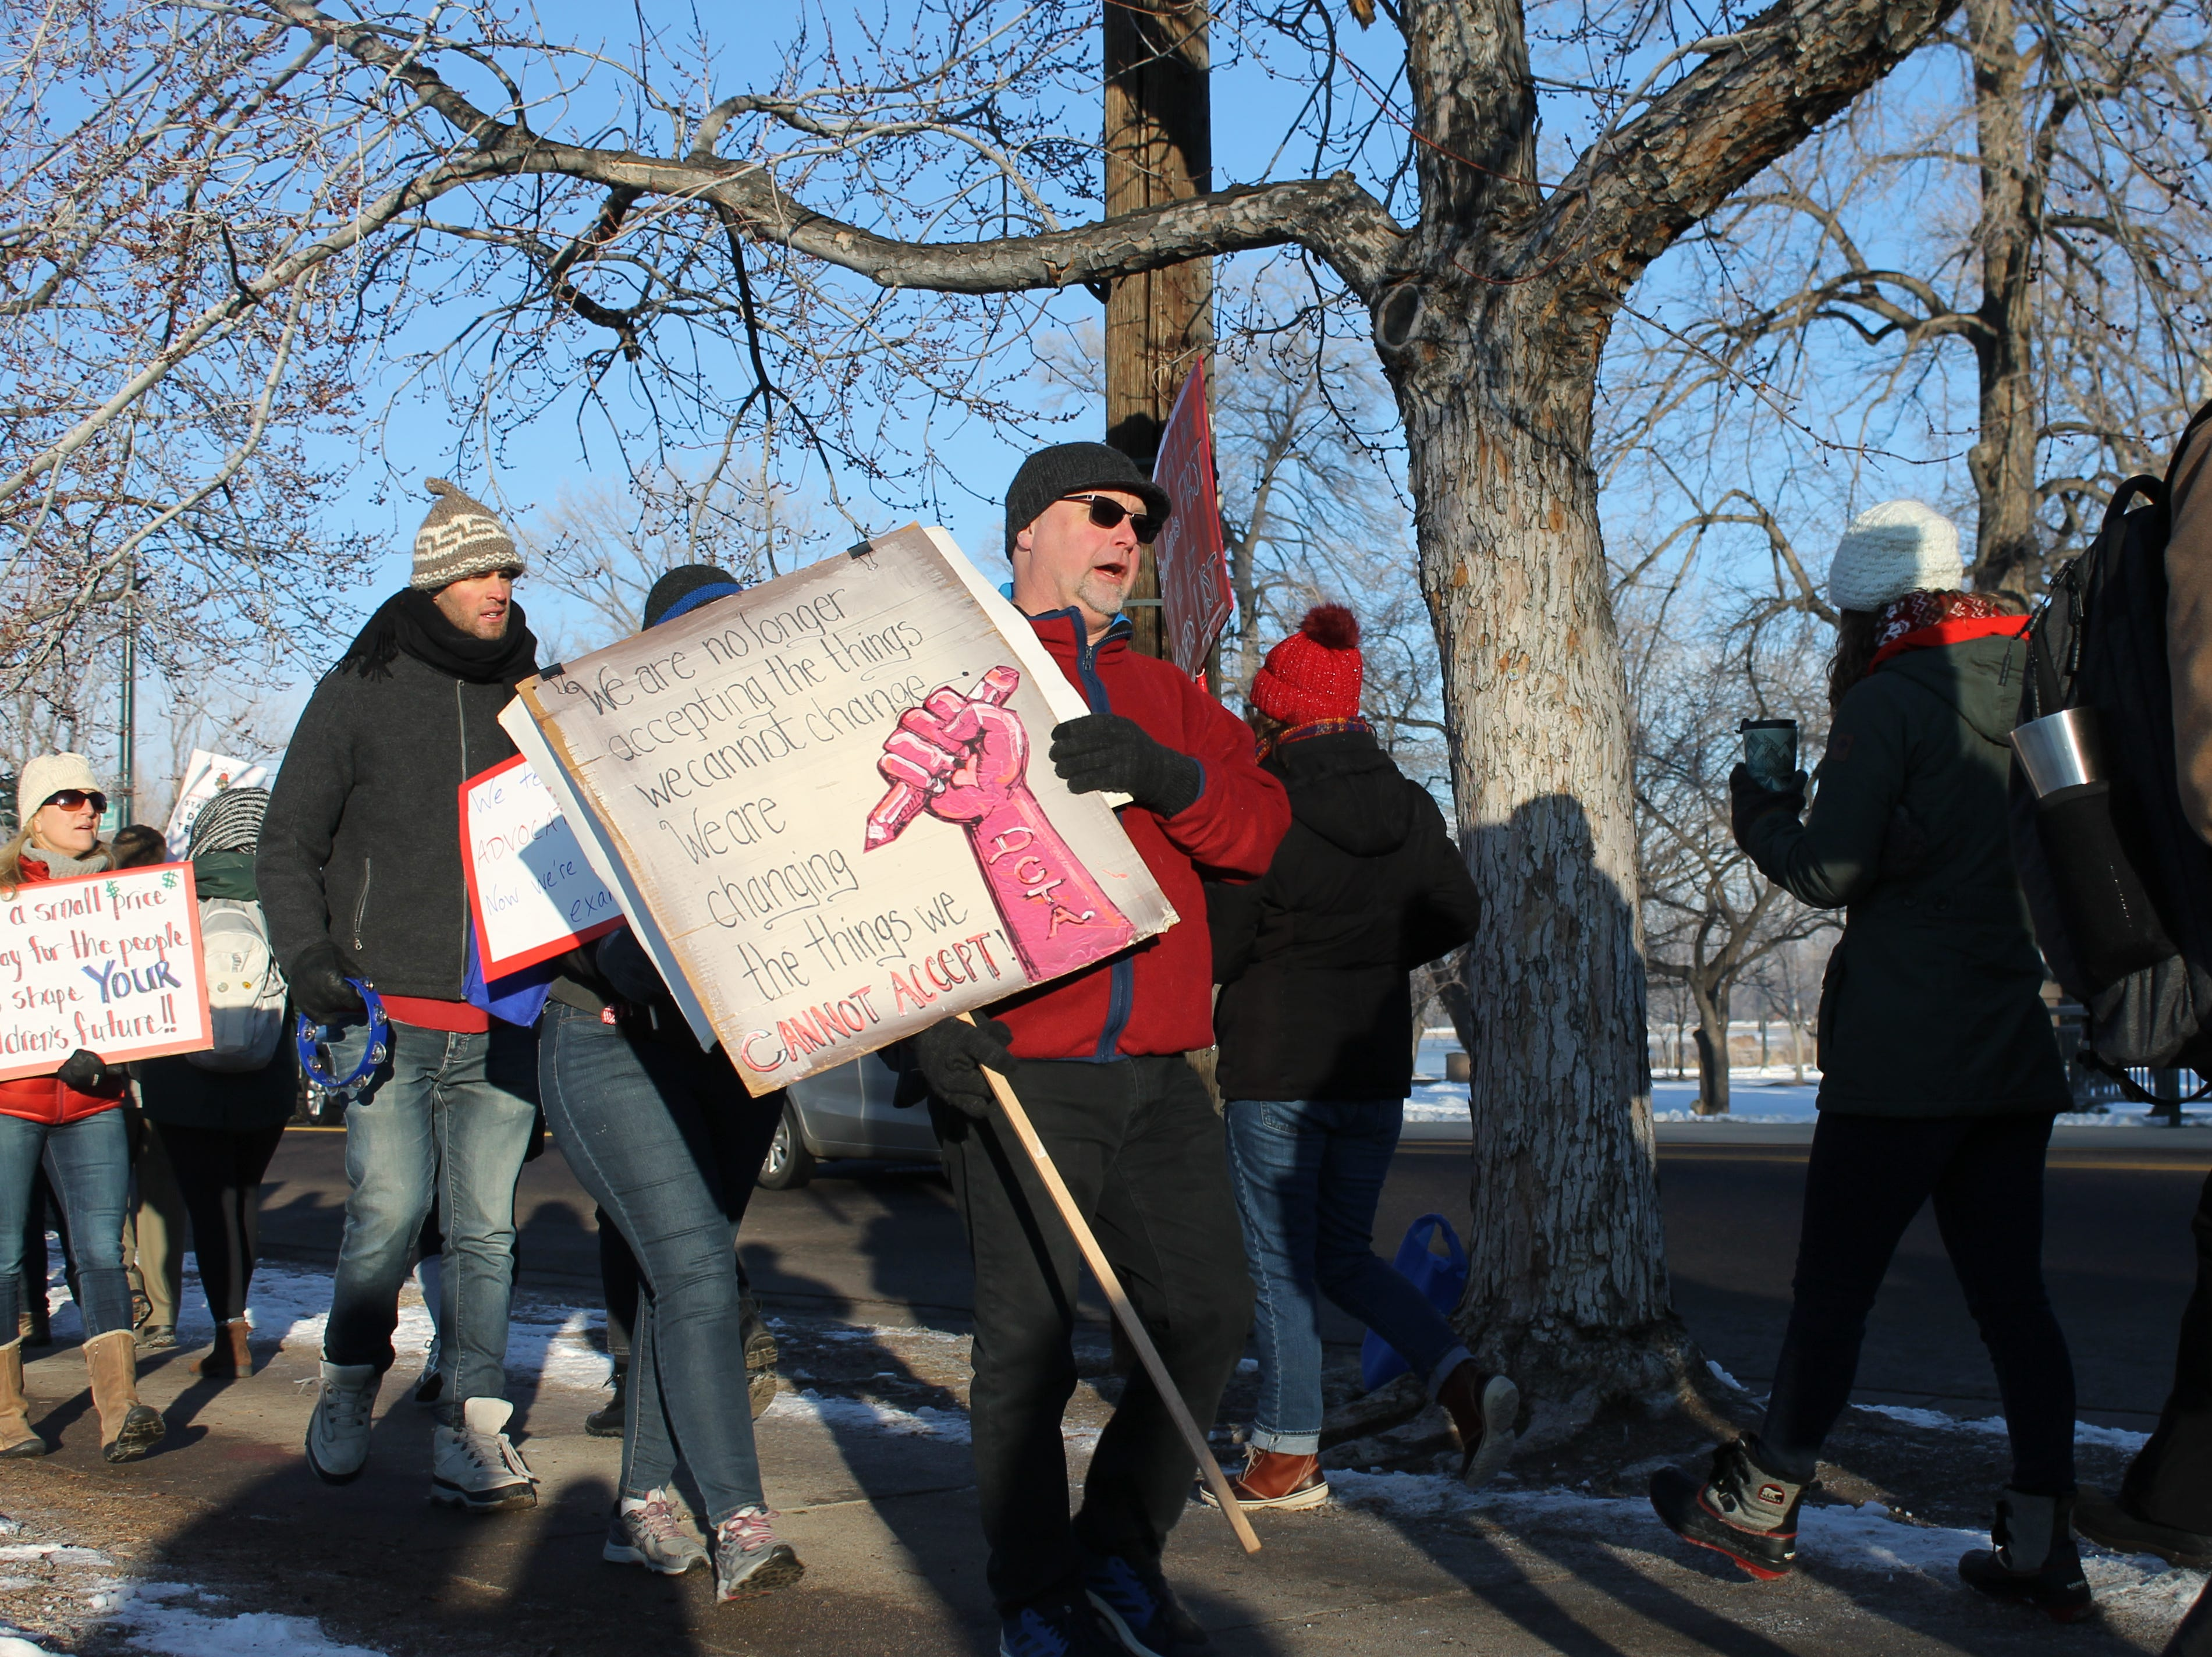 South High School teachers join thousands of Denver Public Schools educators on strike Monday. The district has called in subs to keep schools open, costing  an estimated $400,000 per day.